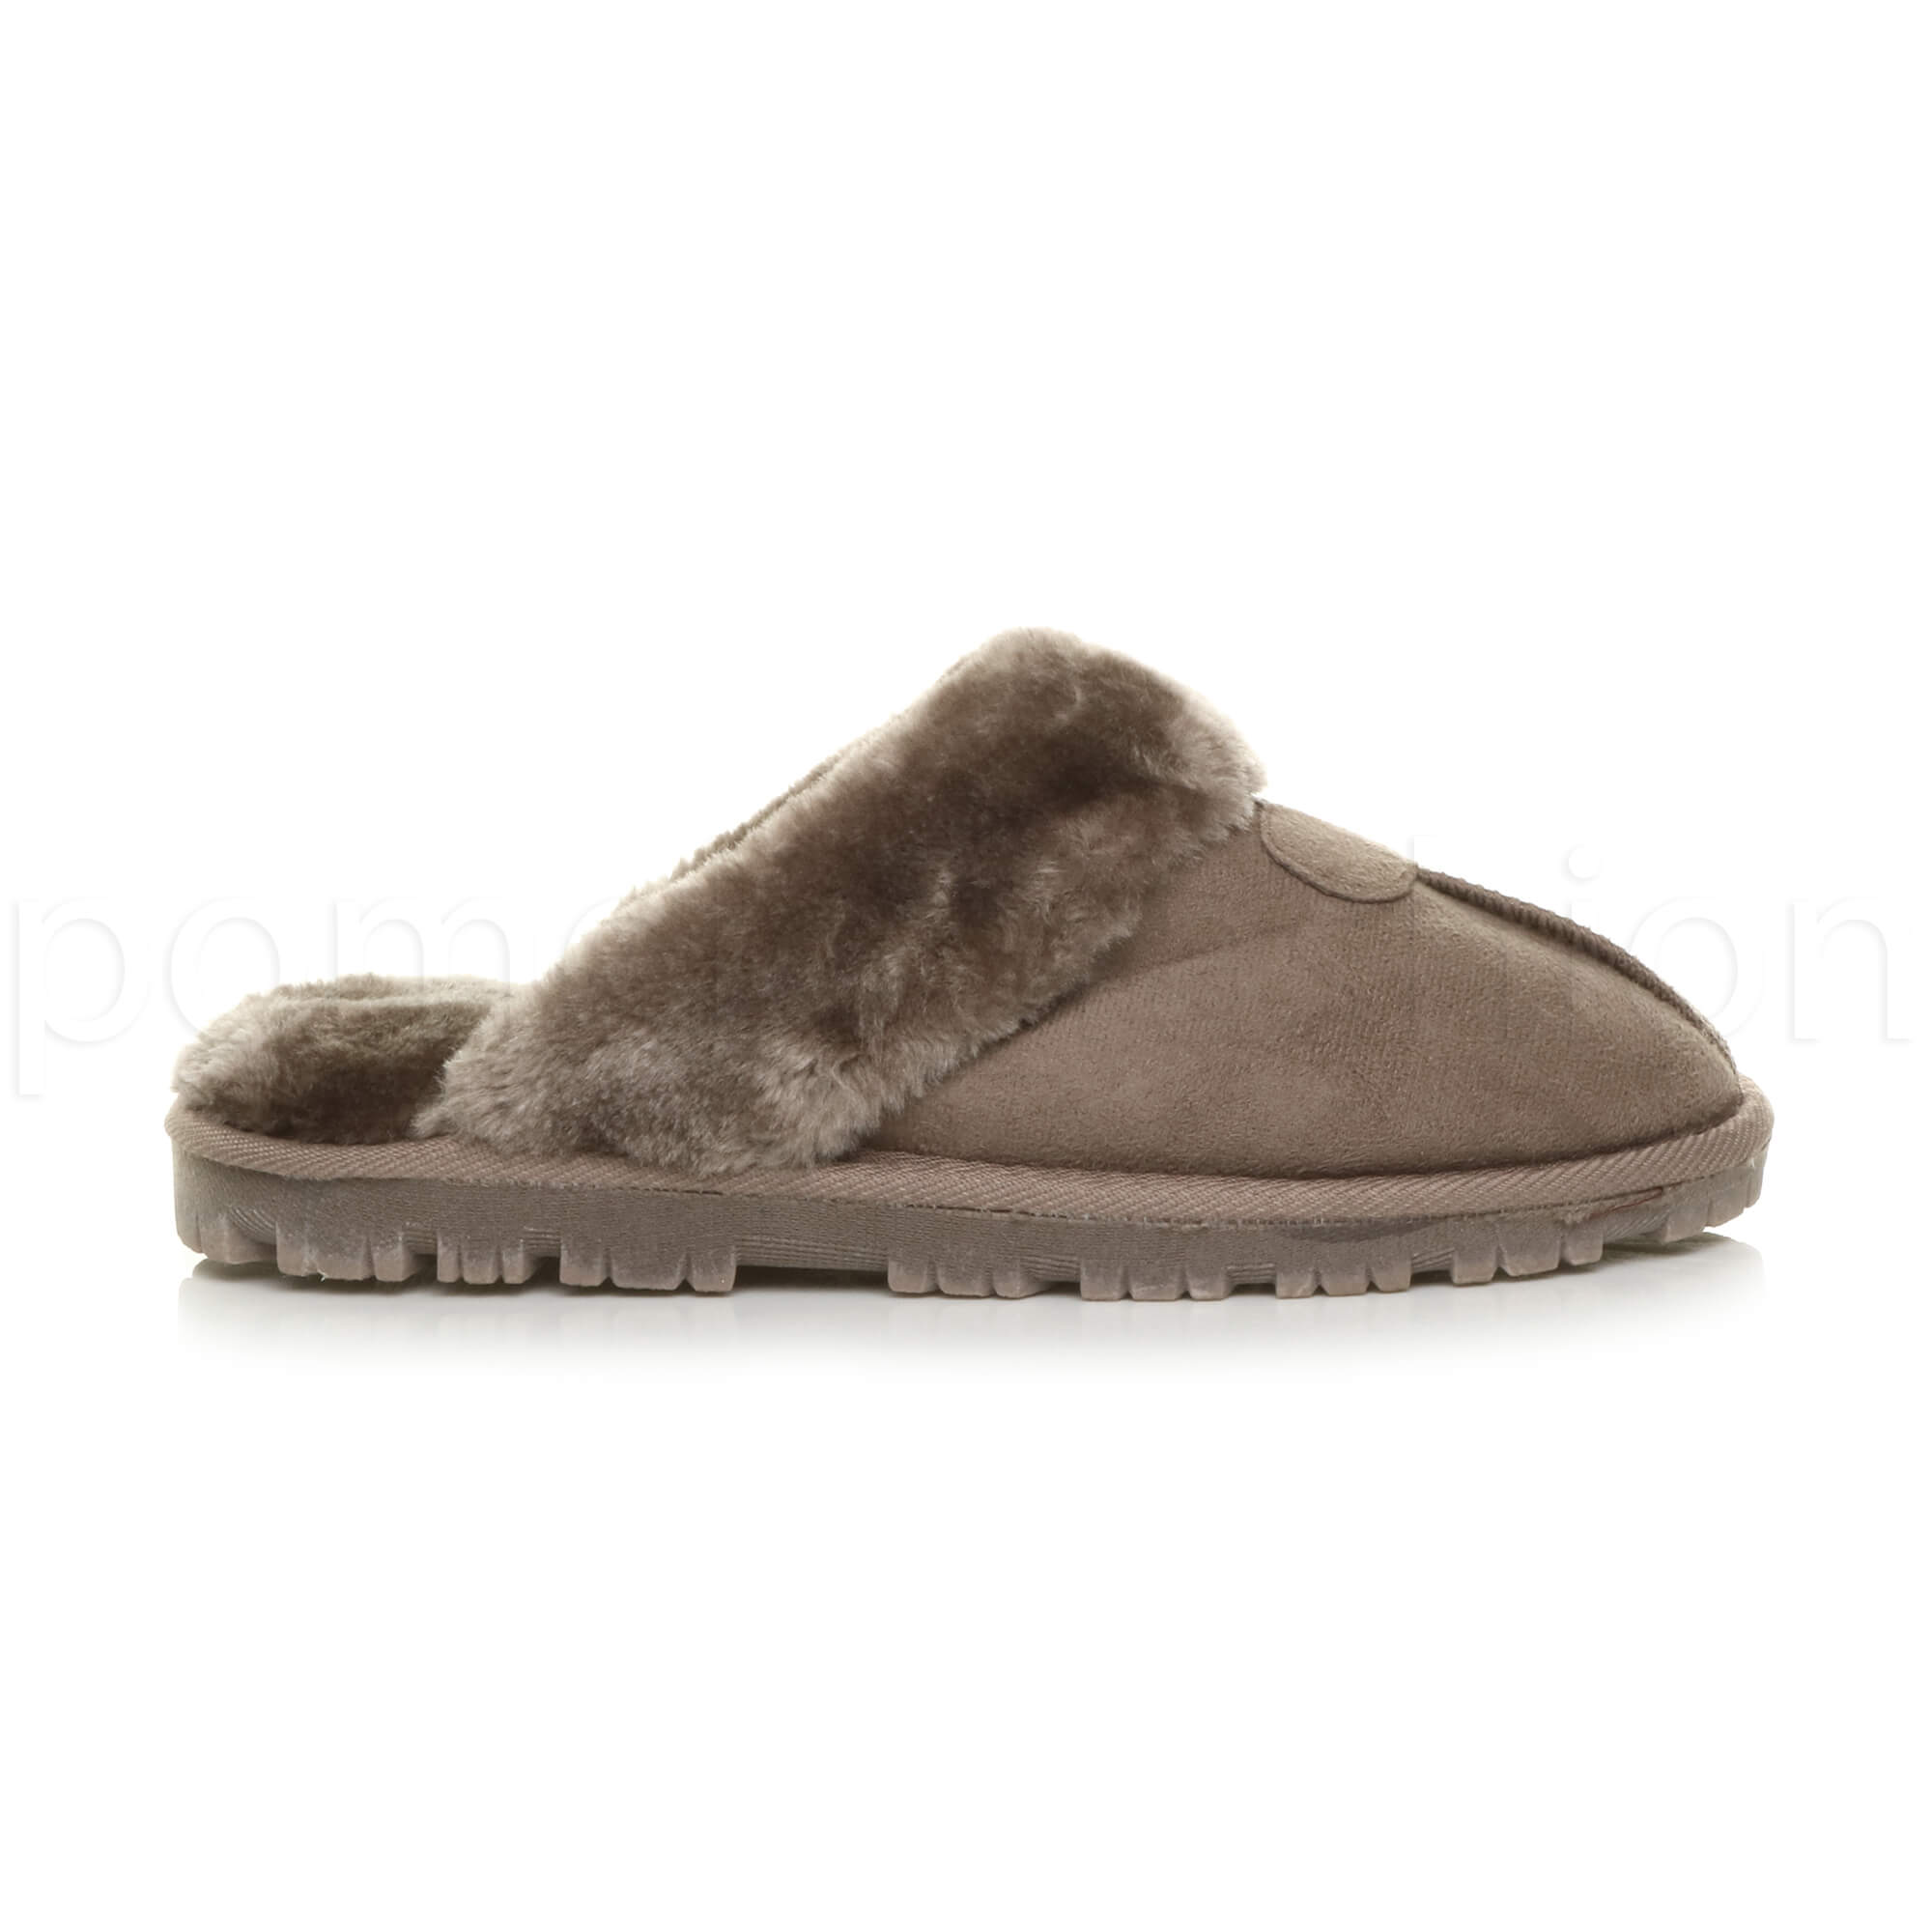 WOMENS-LADIES-FLAT-FUR-LINED-COMFORTABLE-WINTER-MULES-SLIPPERS-HOUSE-SHOES-SIZE thumbnail 52